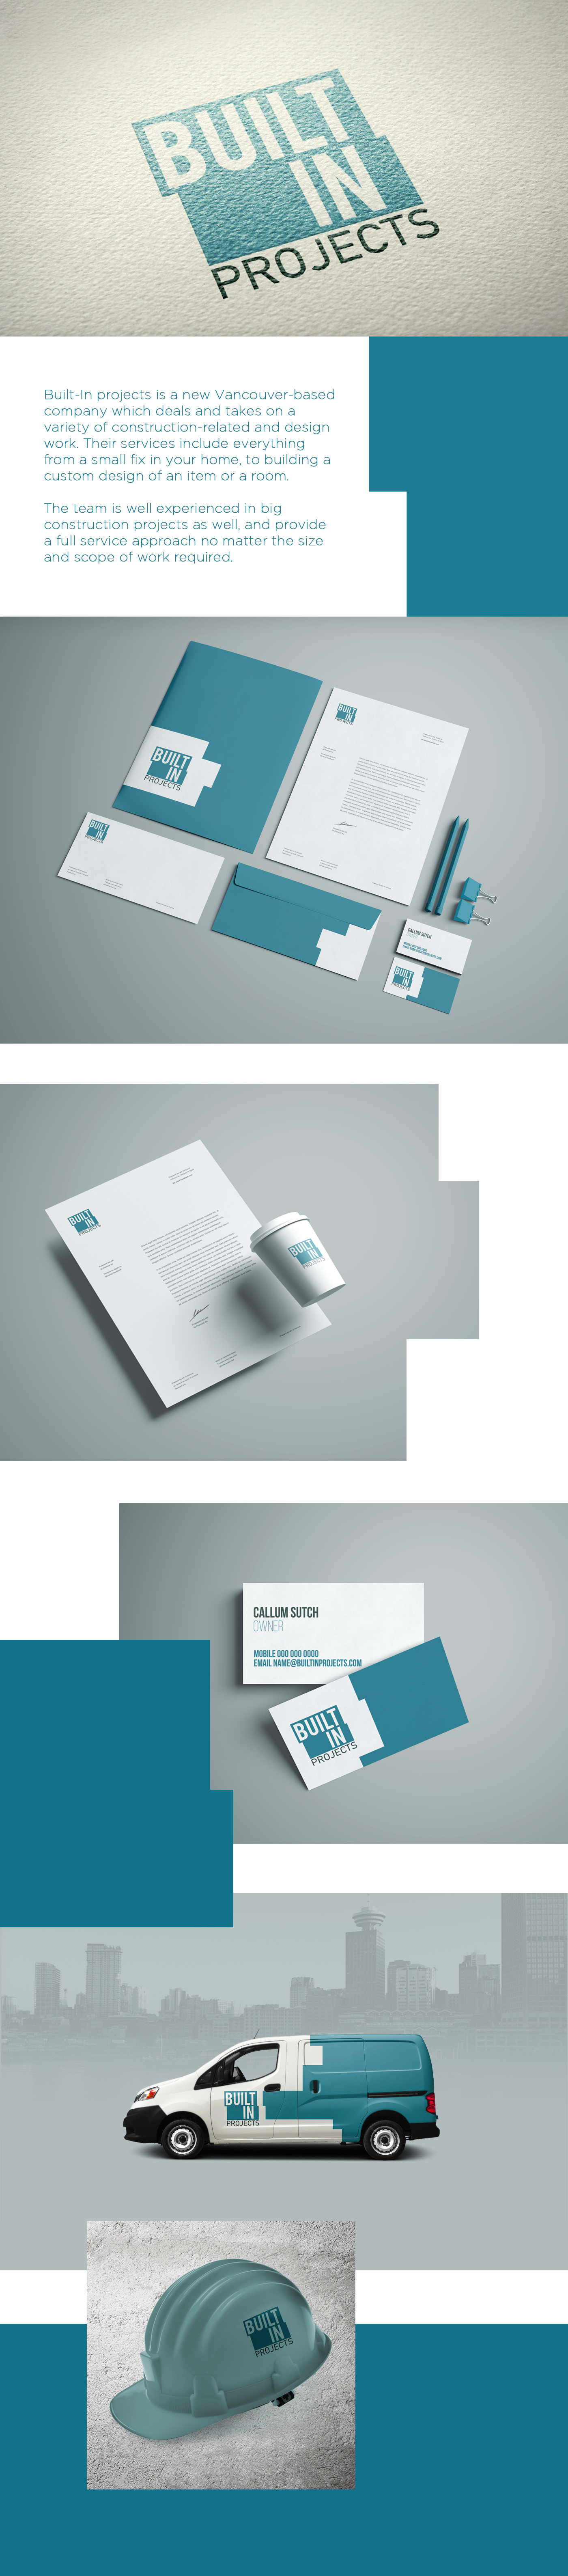 Built-In Projects Branding